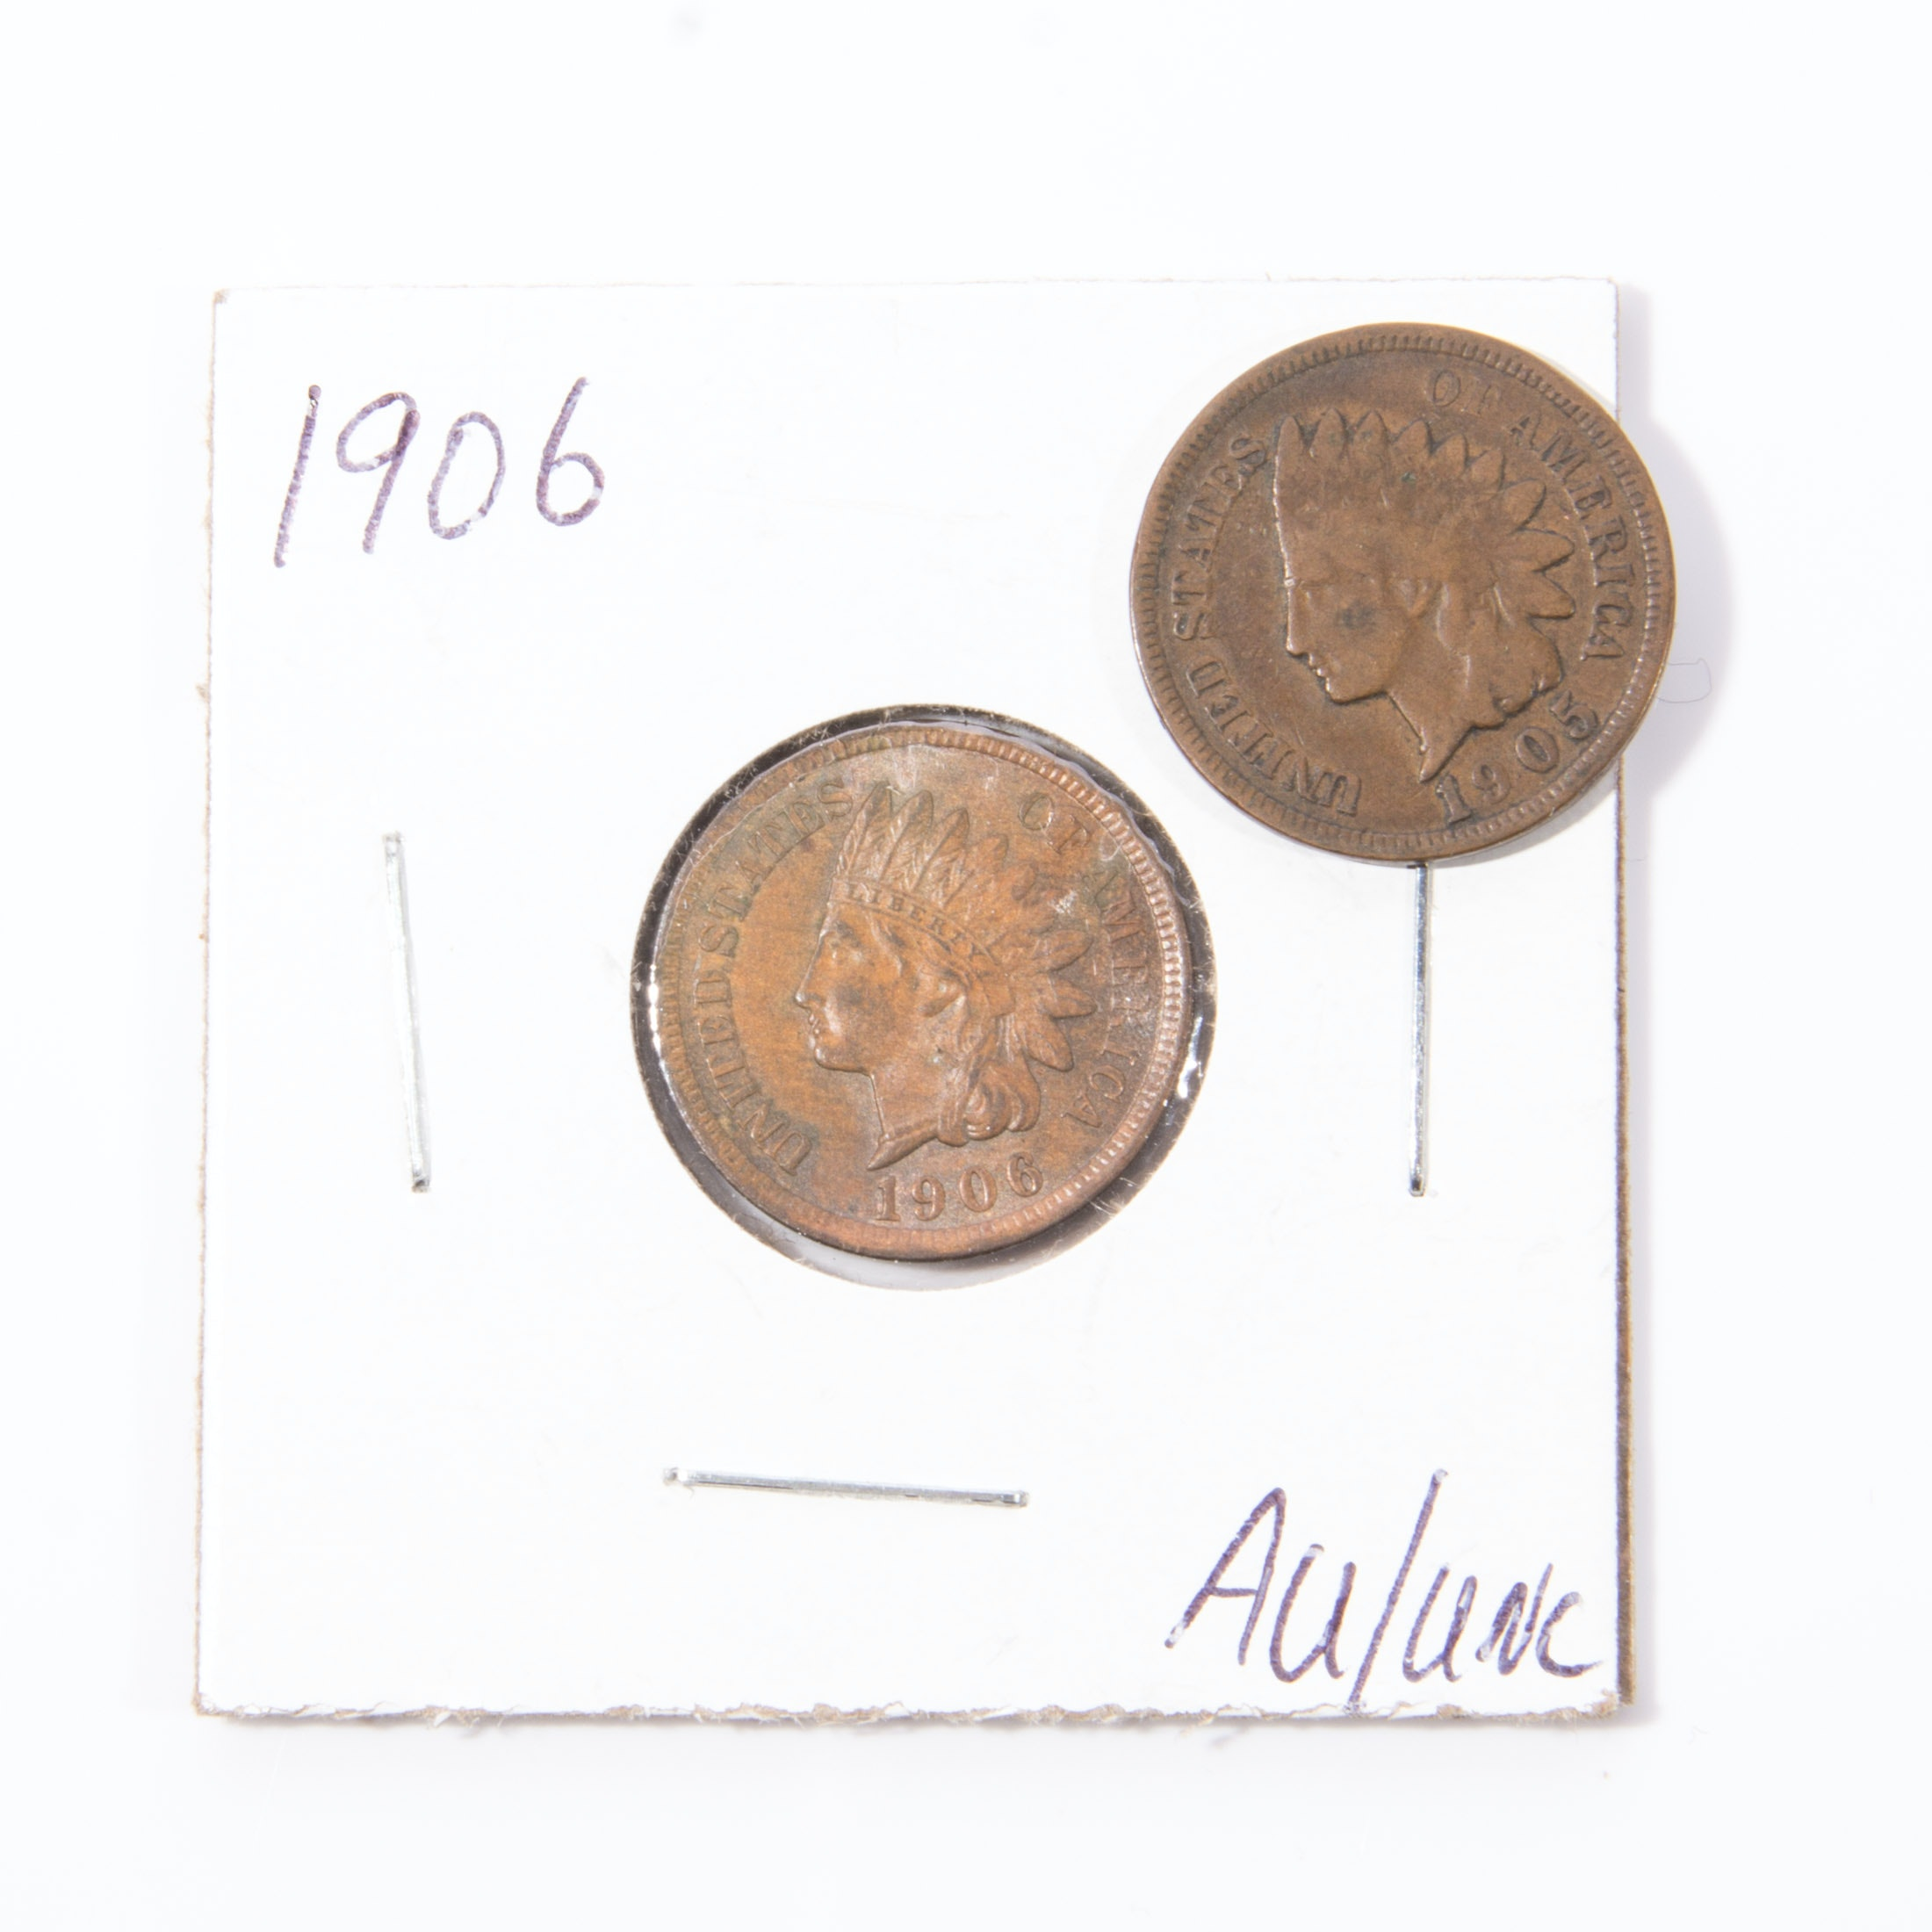 1905 and 1906 Indian Head Cents